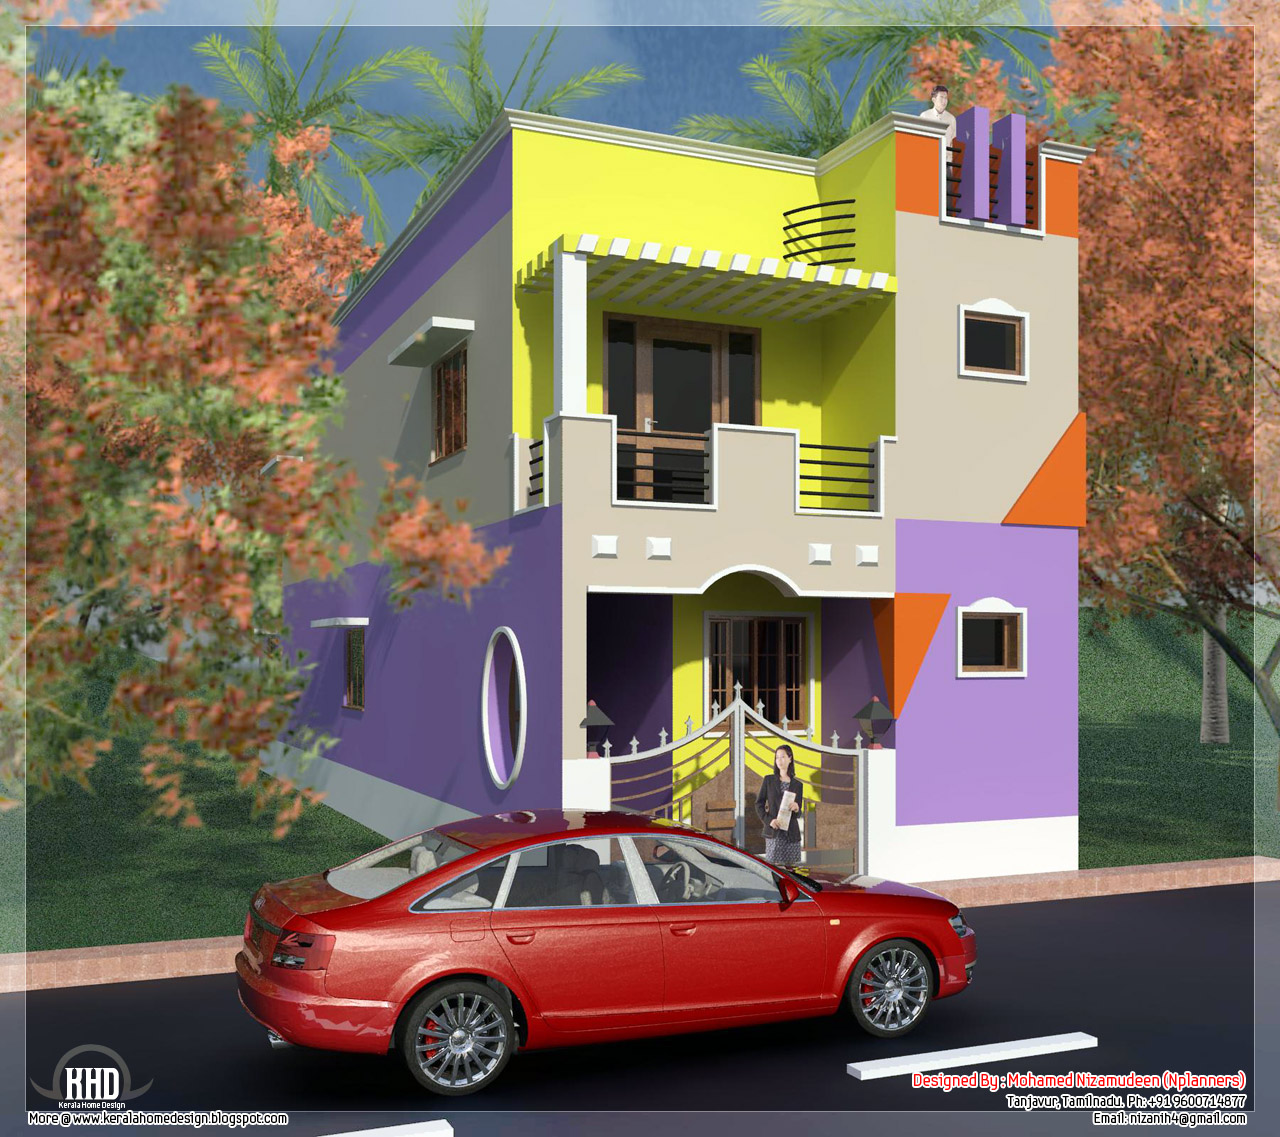 House models in tamil nadu joy studio design gallery for Home models in tamilnadu pictures